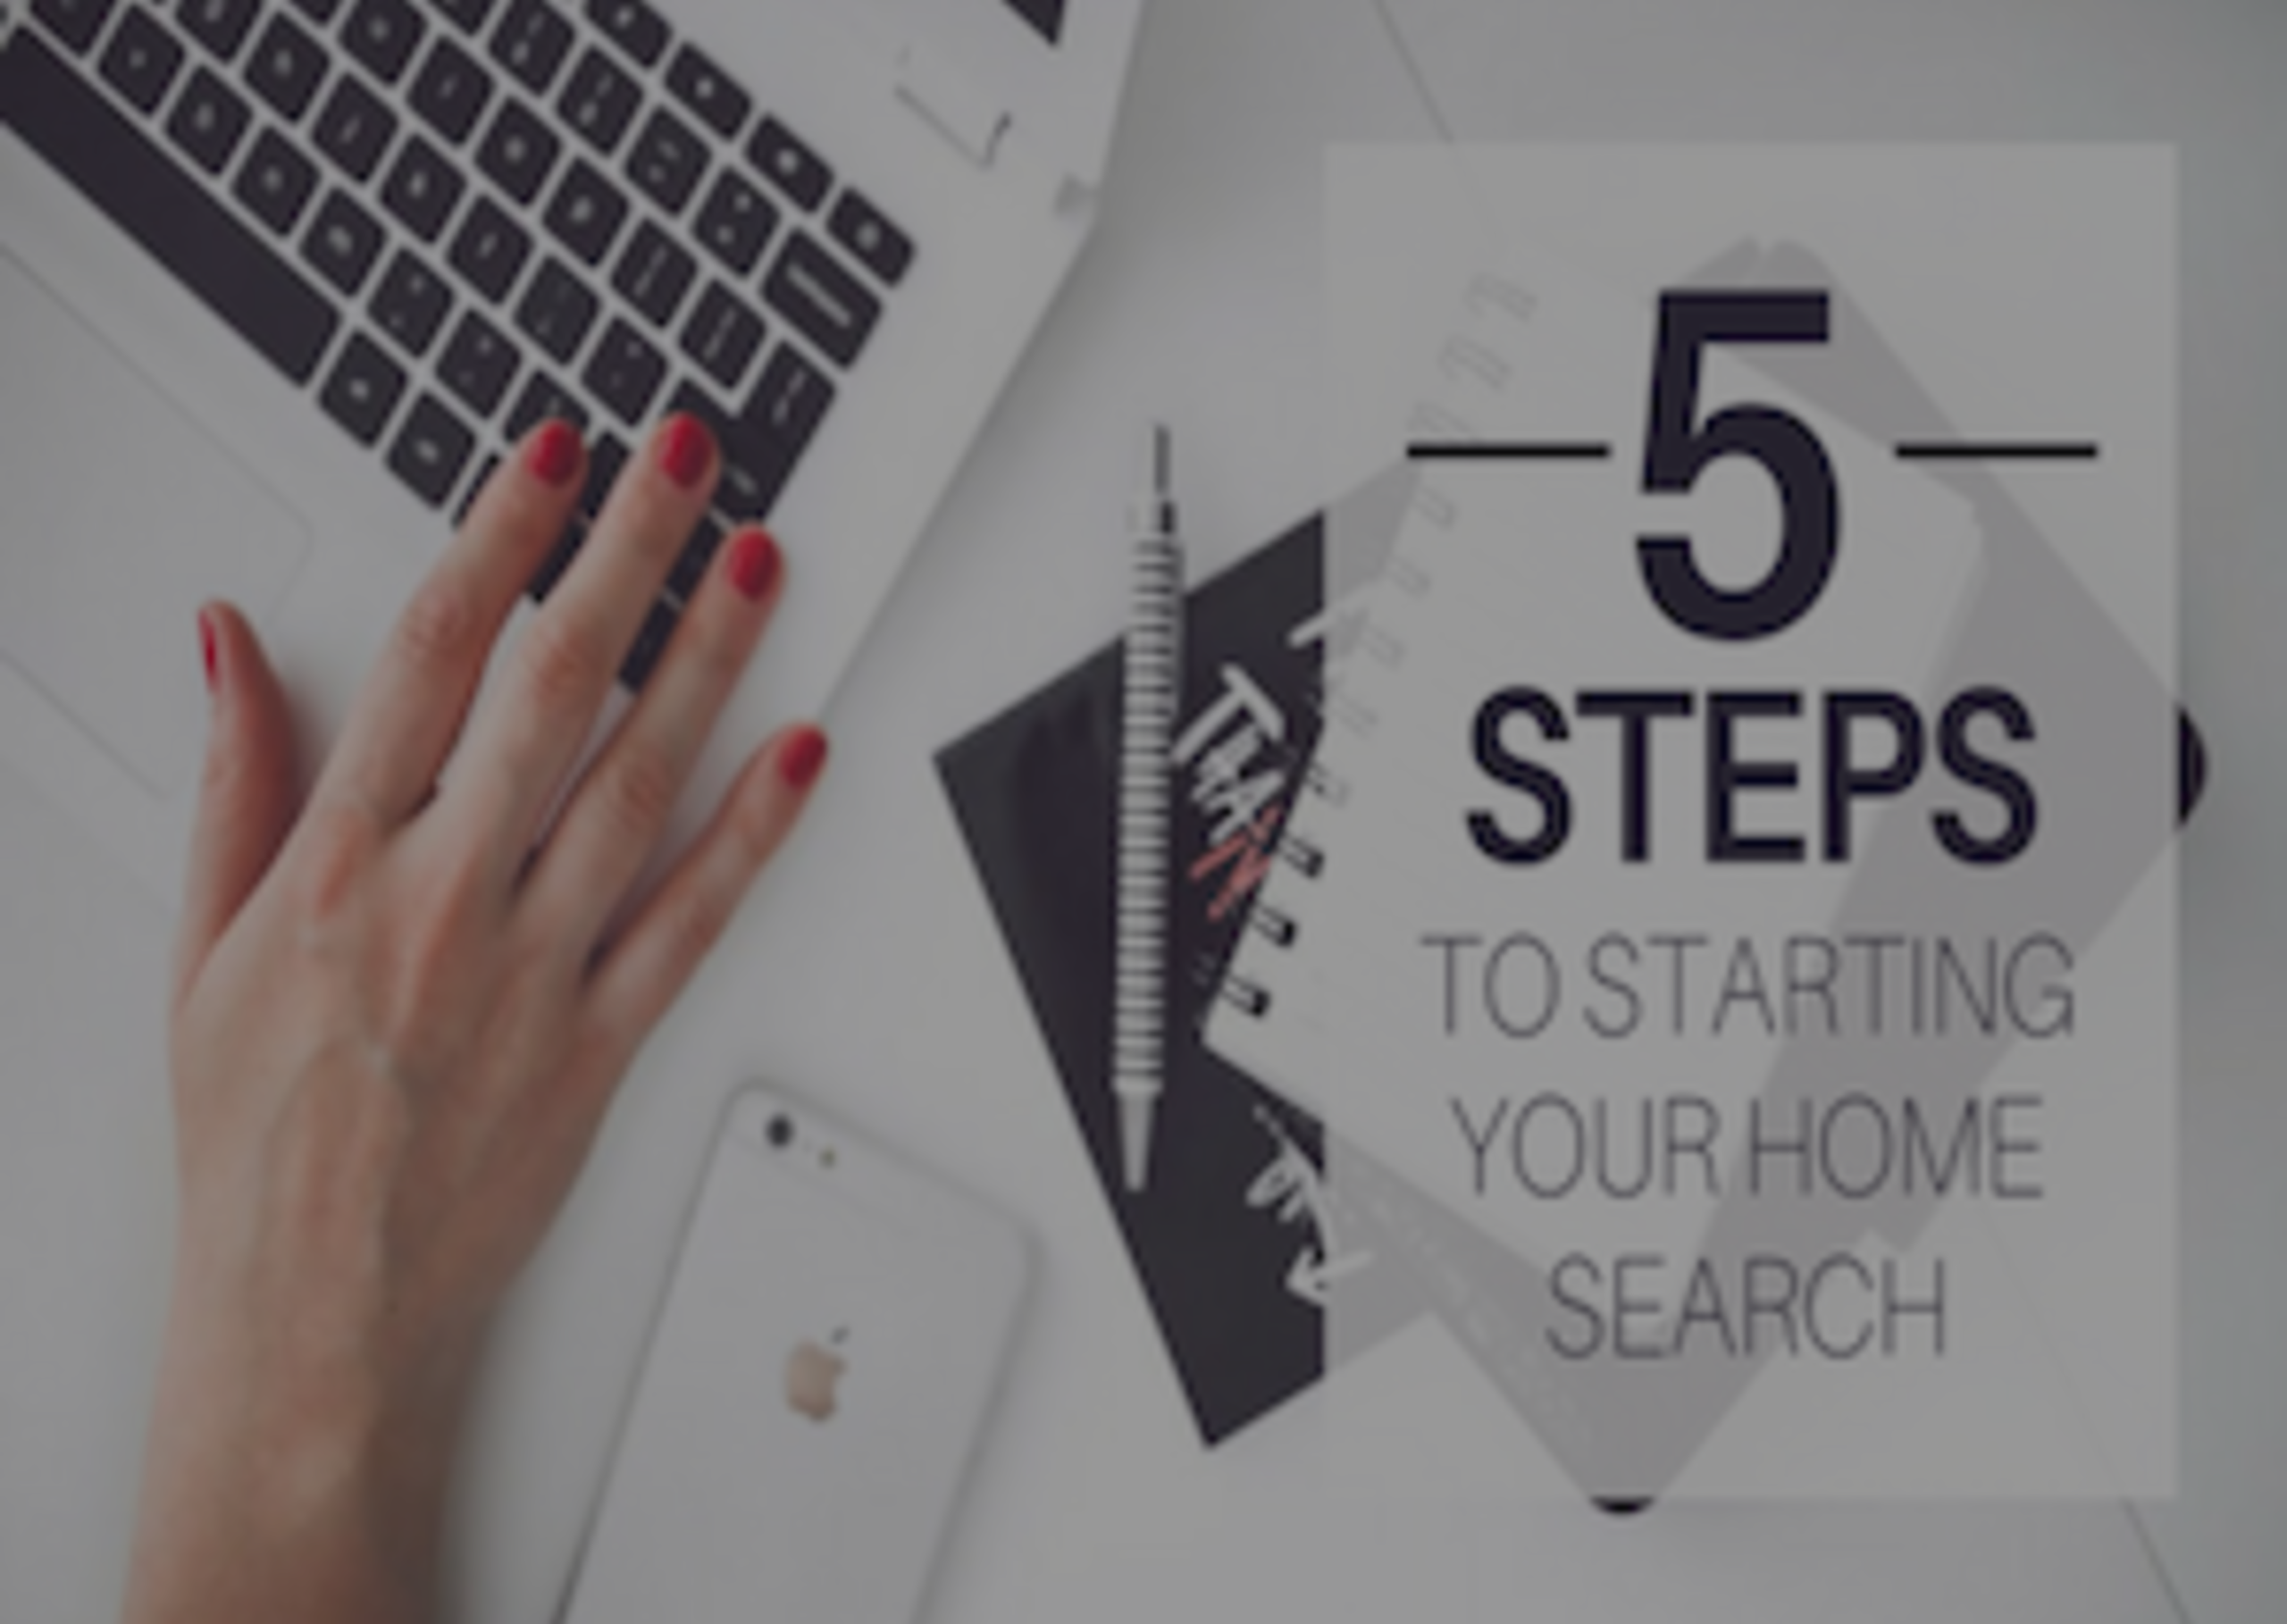 5 Steps to Starting Your Home Search